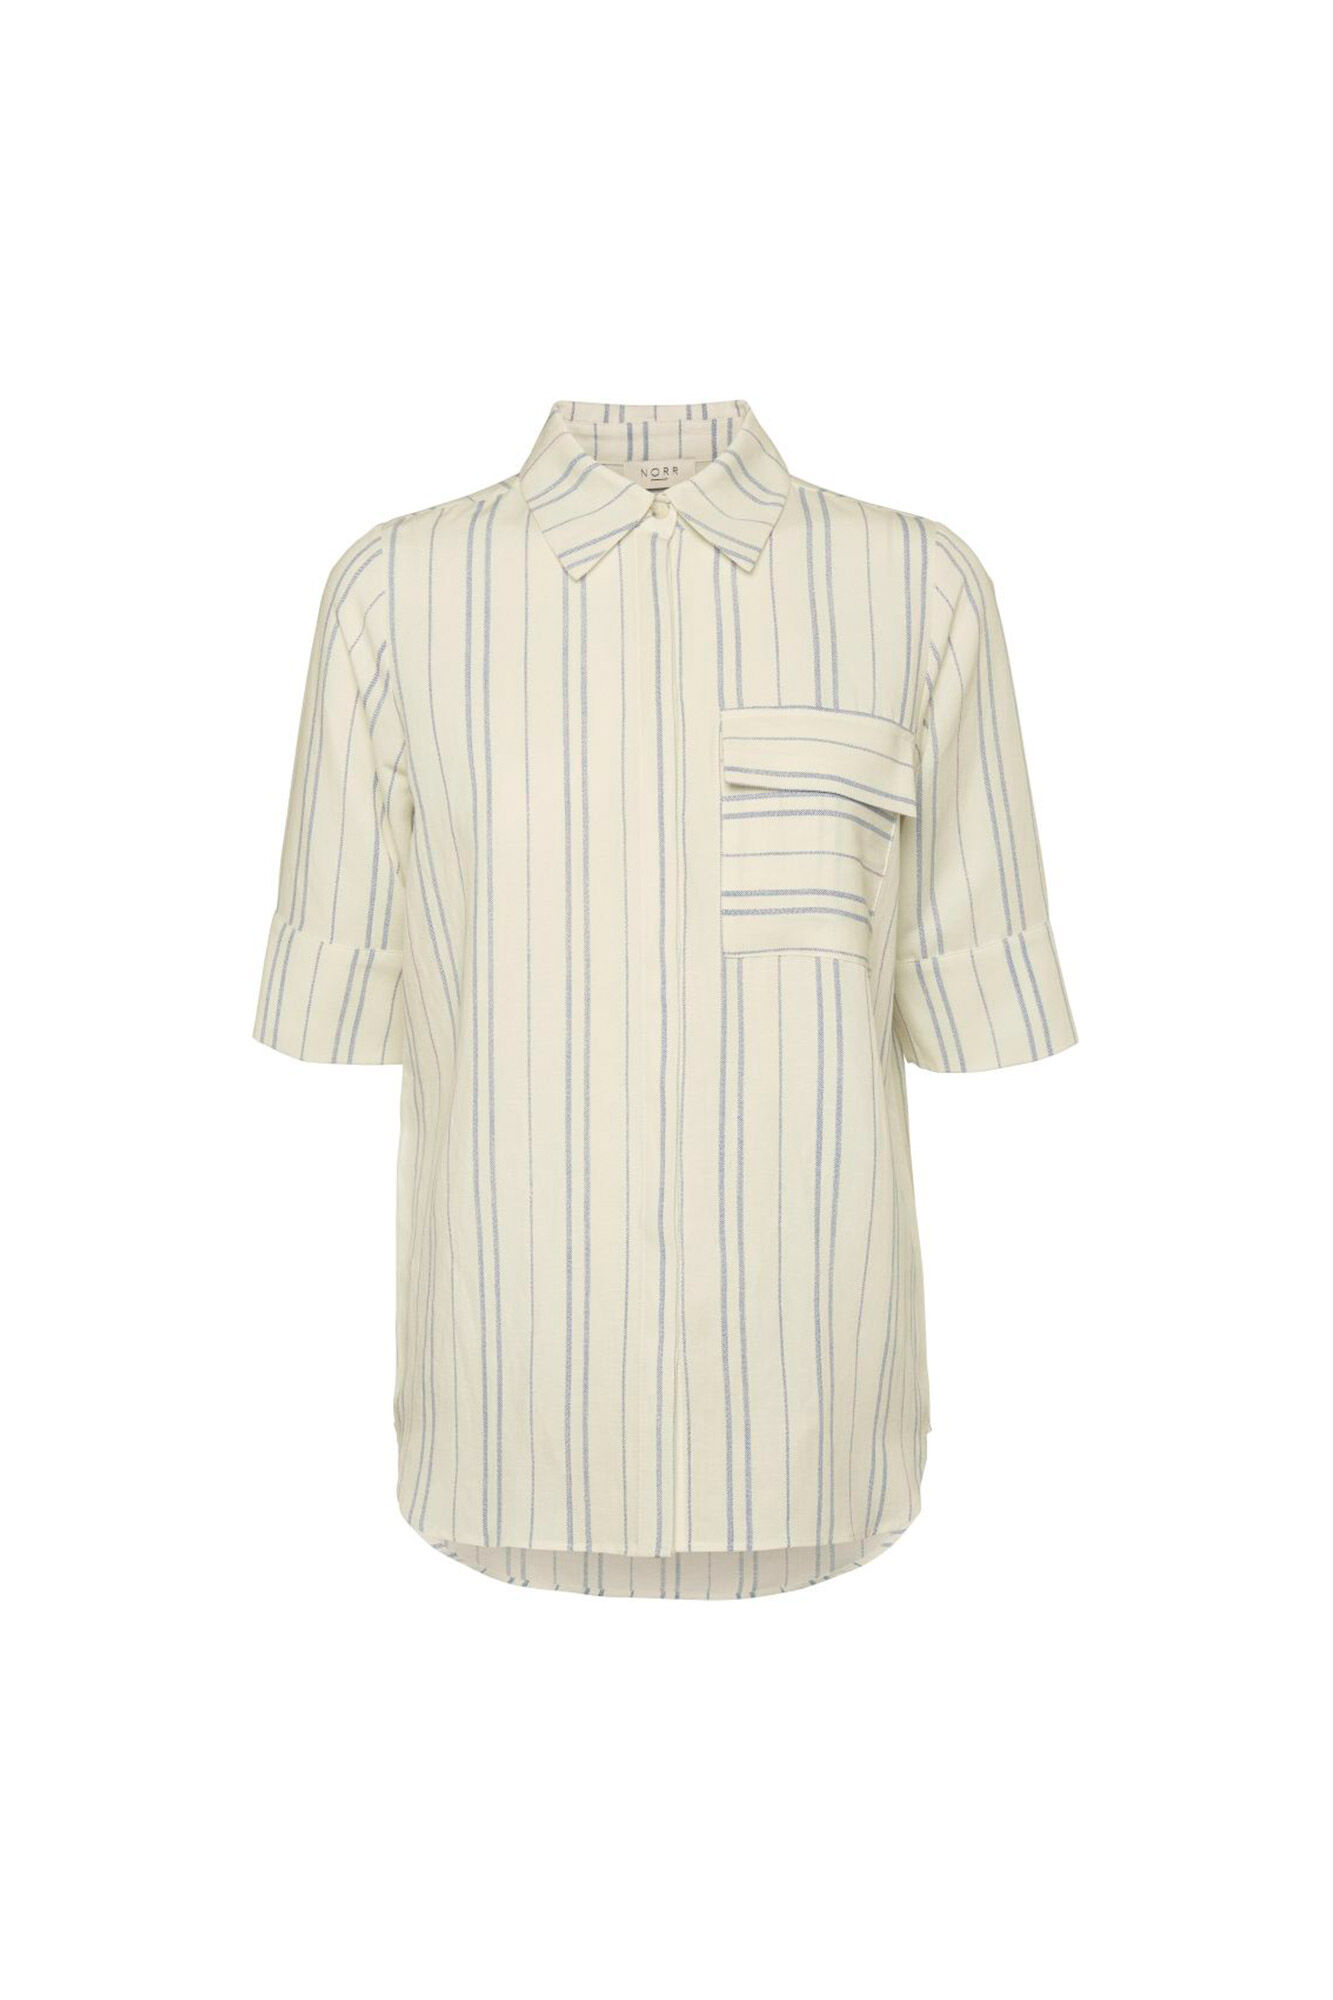 Silverly shirt 11861253, WHITE/BLUE STRIPE